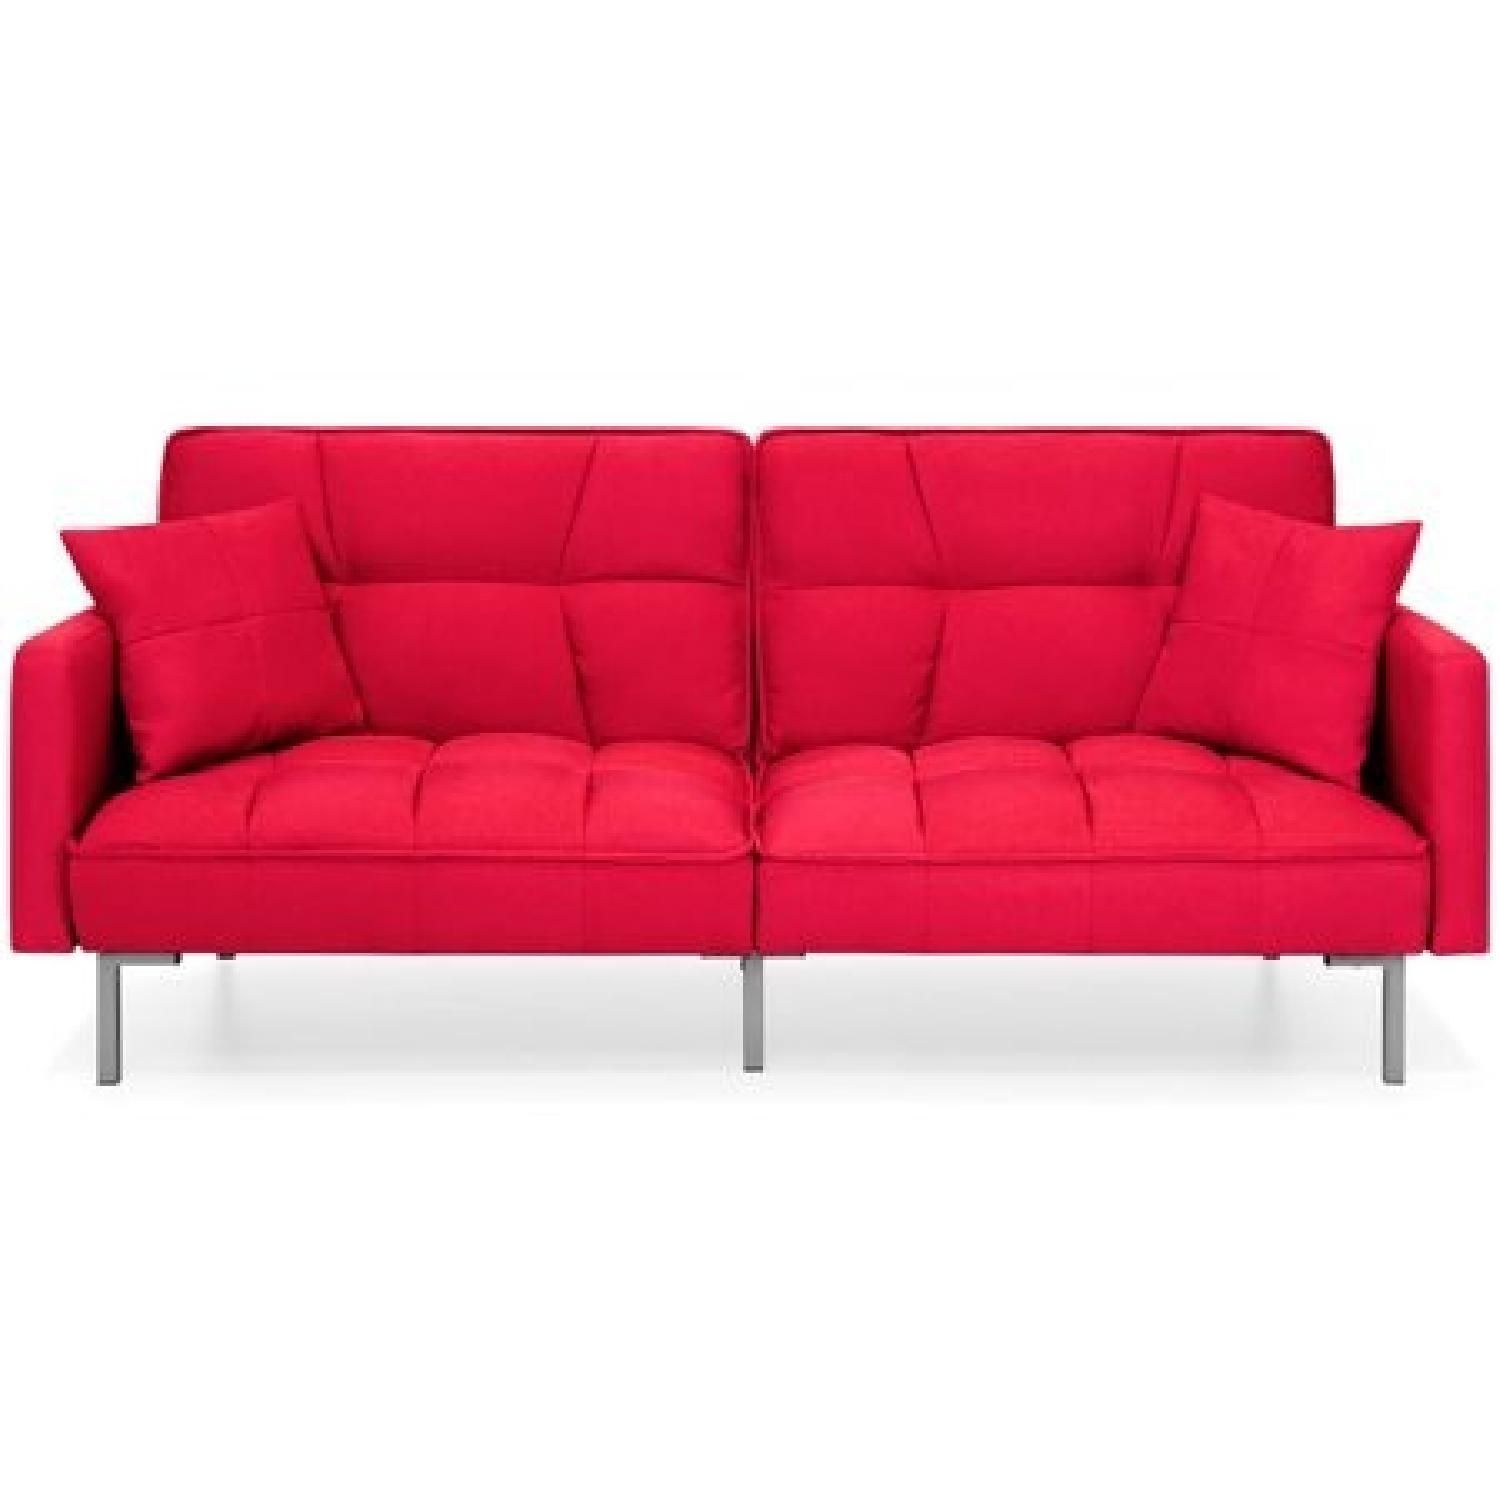 Red Convertible Linen Tufted Futon   Apartment in 2019 ...